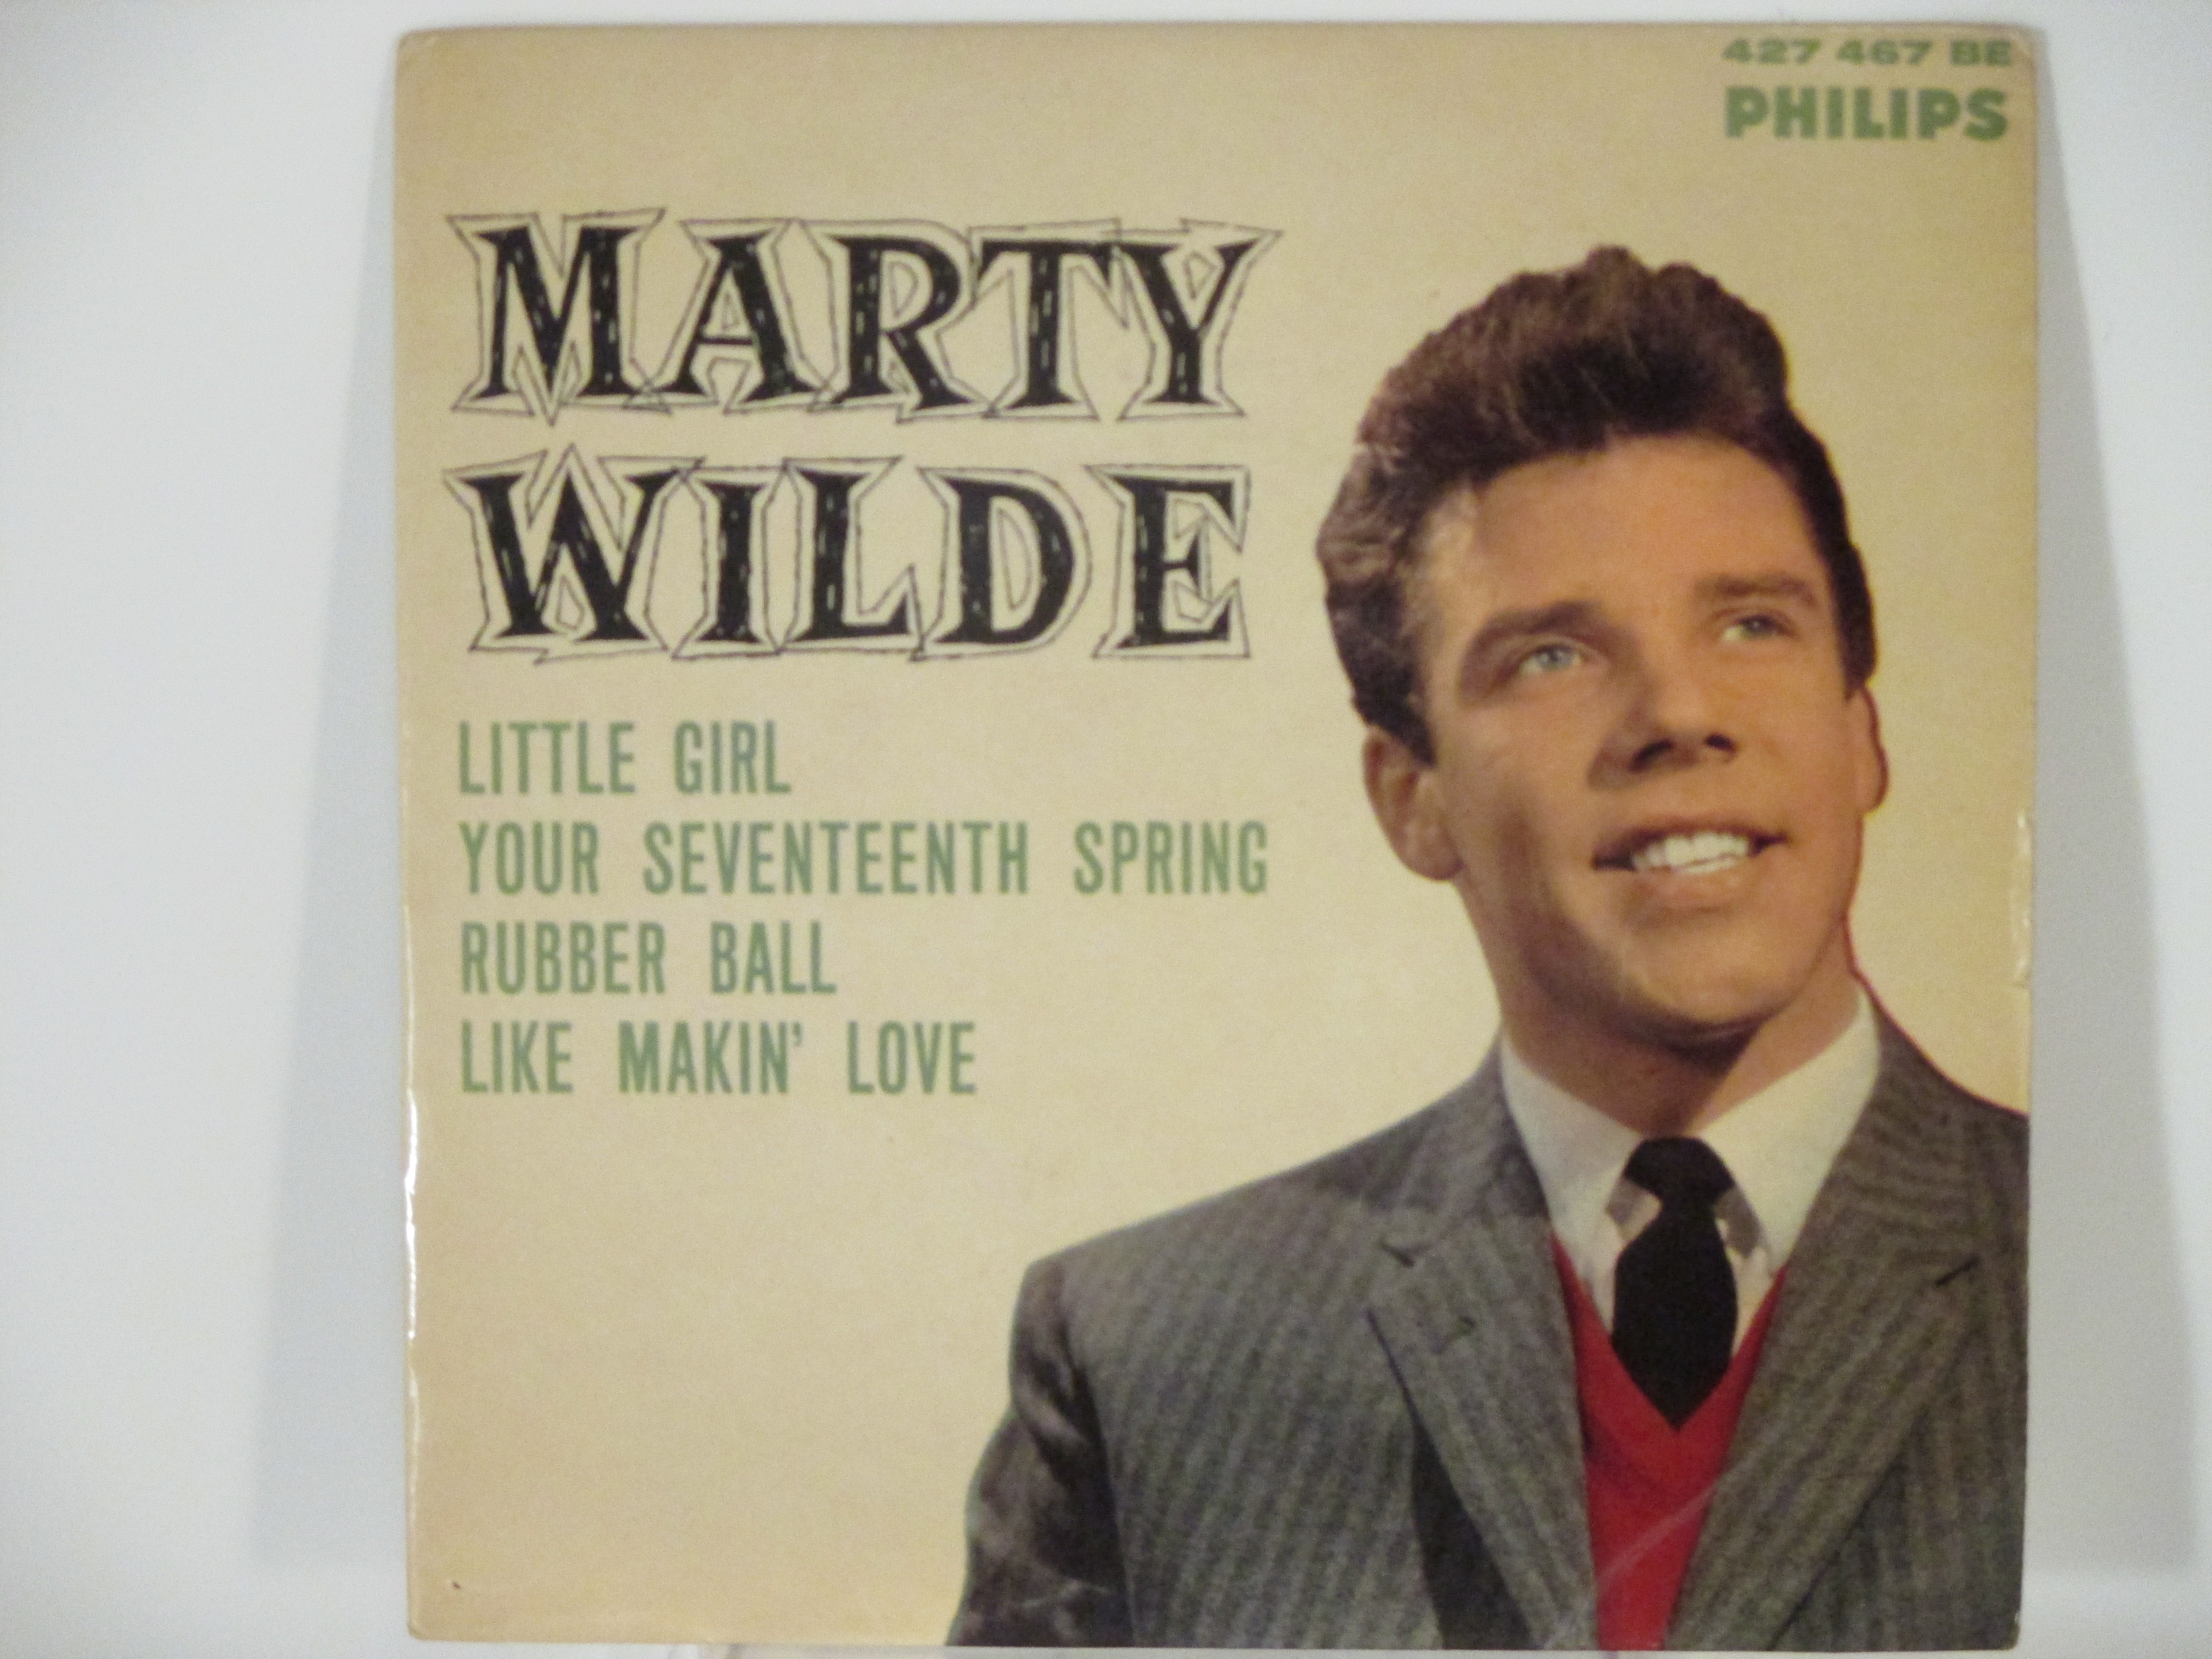 MARTY WILDE : (EP) Little girl / Your seventeenth spring / Rubber ball / Like makin' love